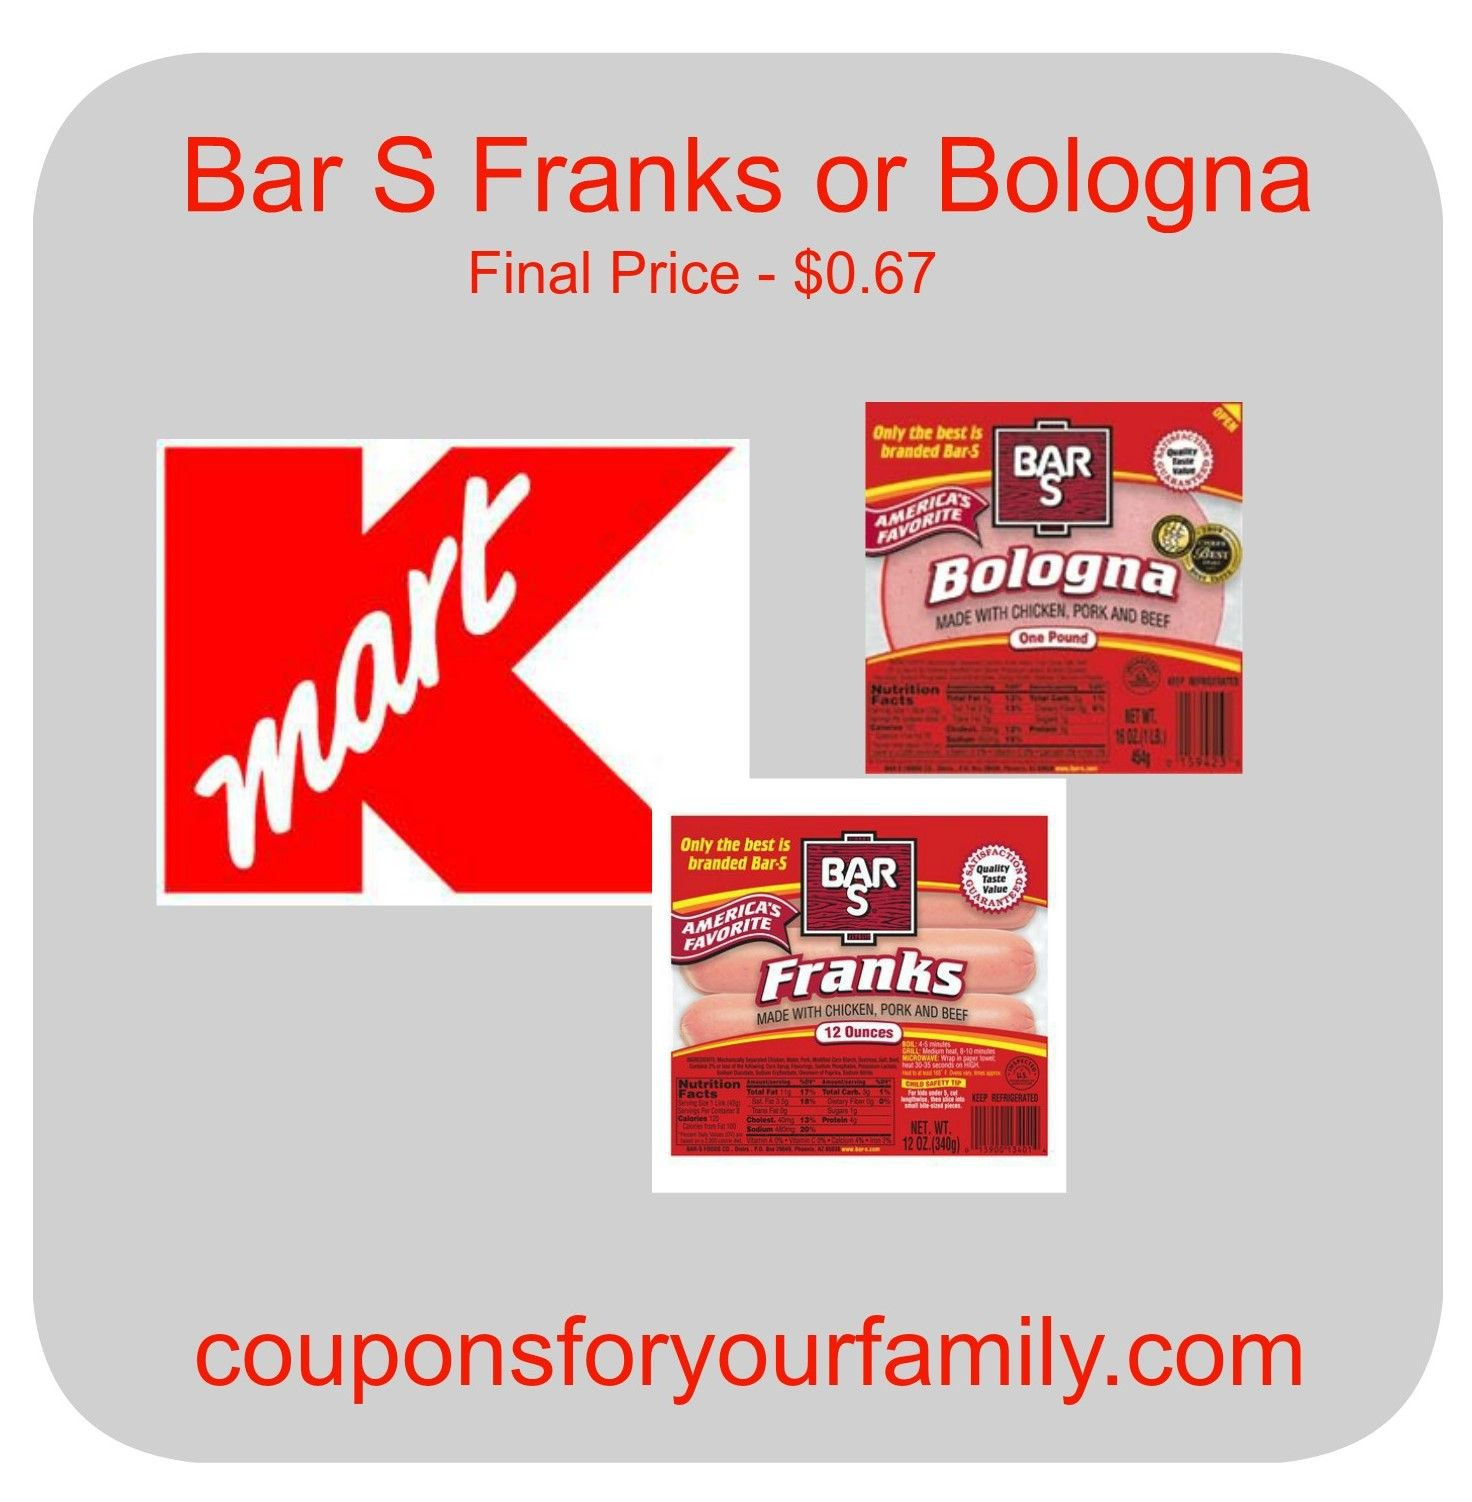 Kmart Coupons Kmart Coupon Deal Oct 12 67 Bar S Franks Or Bologna Shop